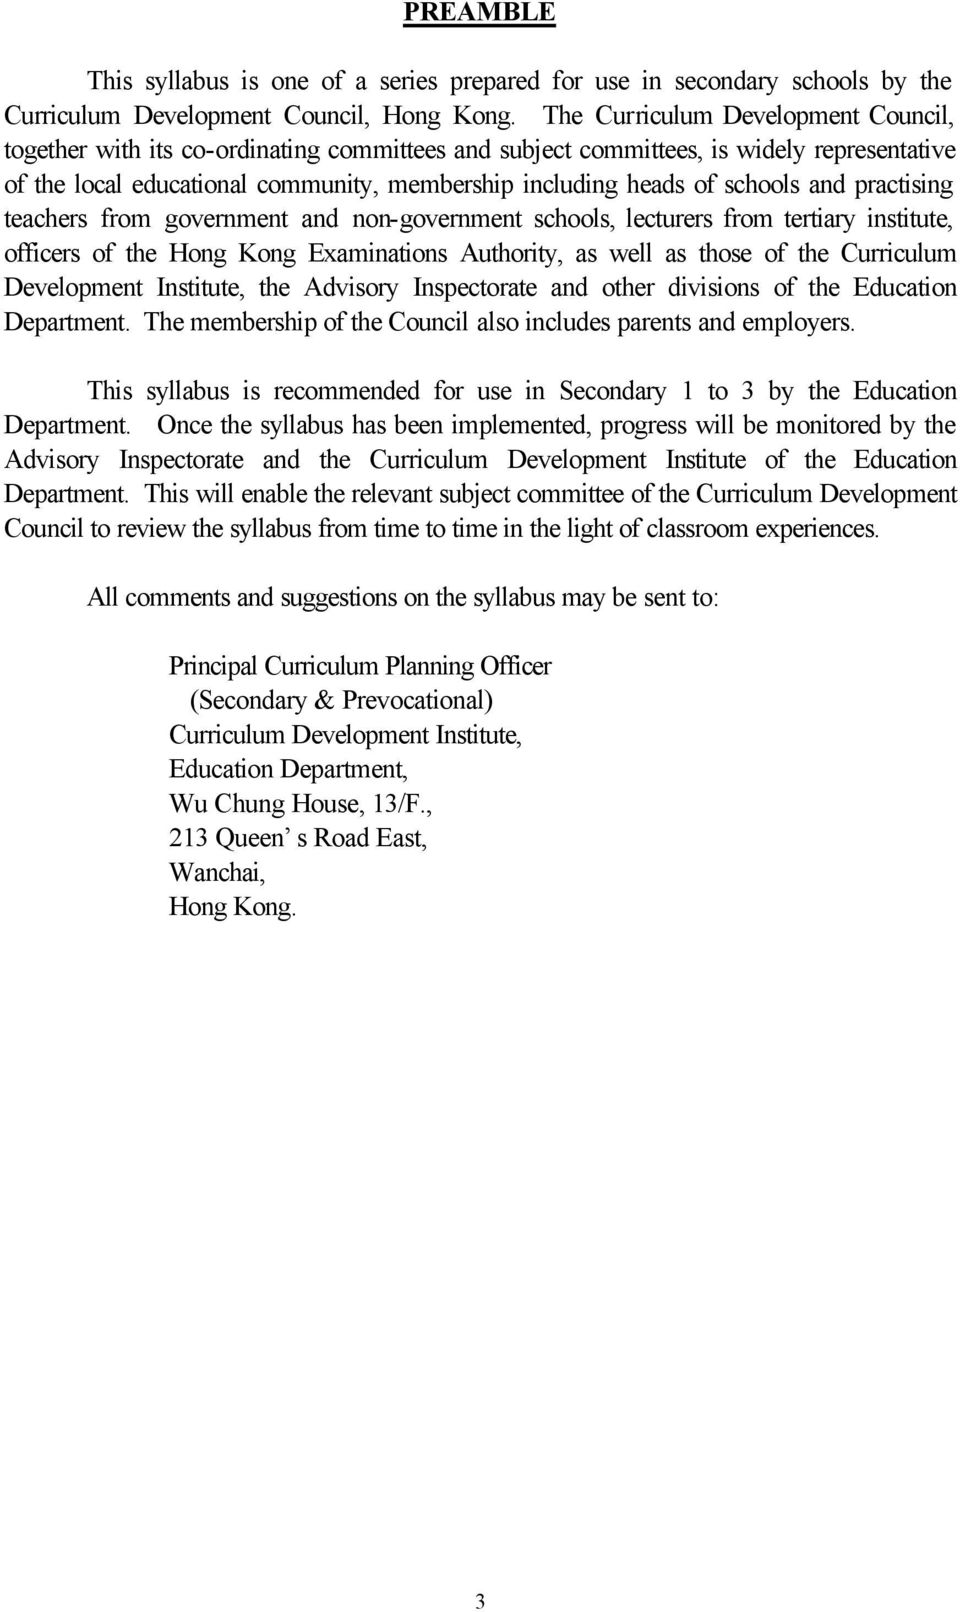 schools and practising teachers from government and non-government schools, lecturers from tertiary institute, officers of the Hong Kong Examinations Authority, as well as those of the Curriculum